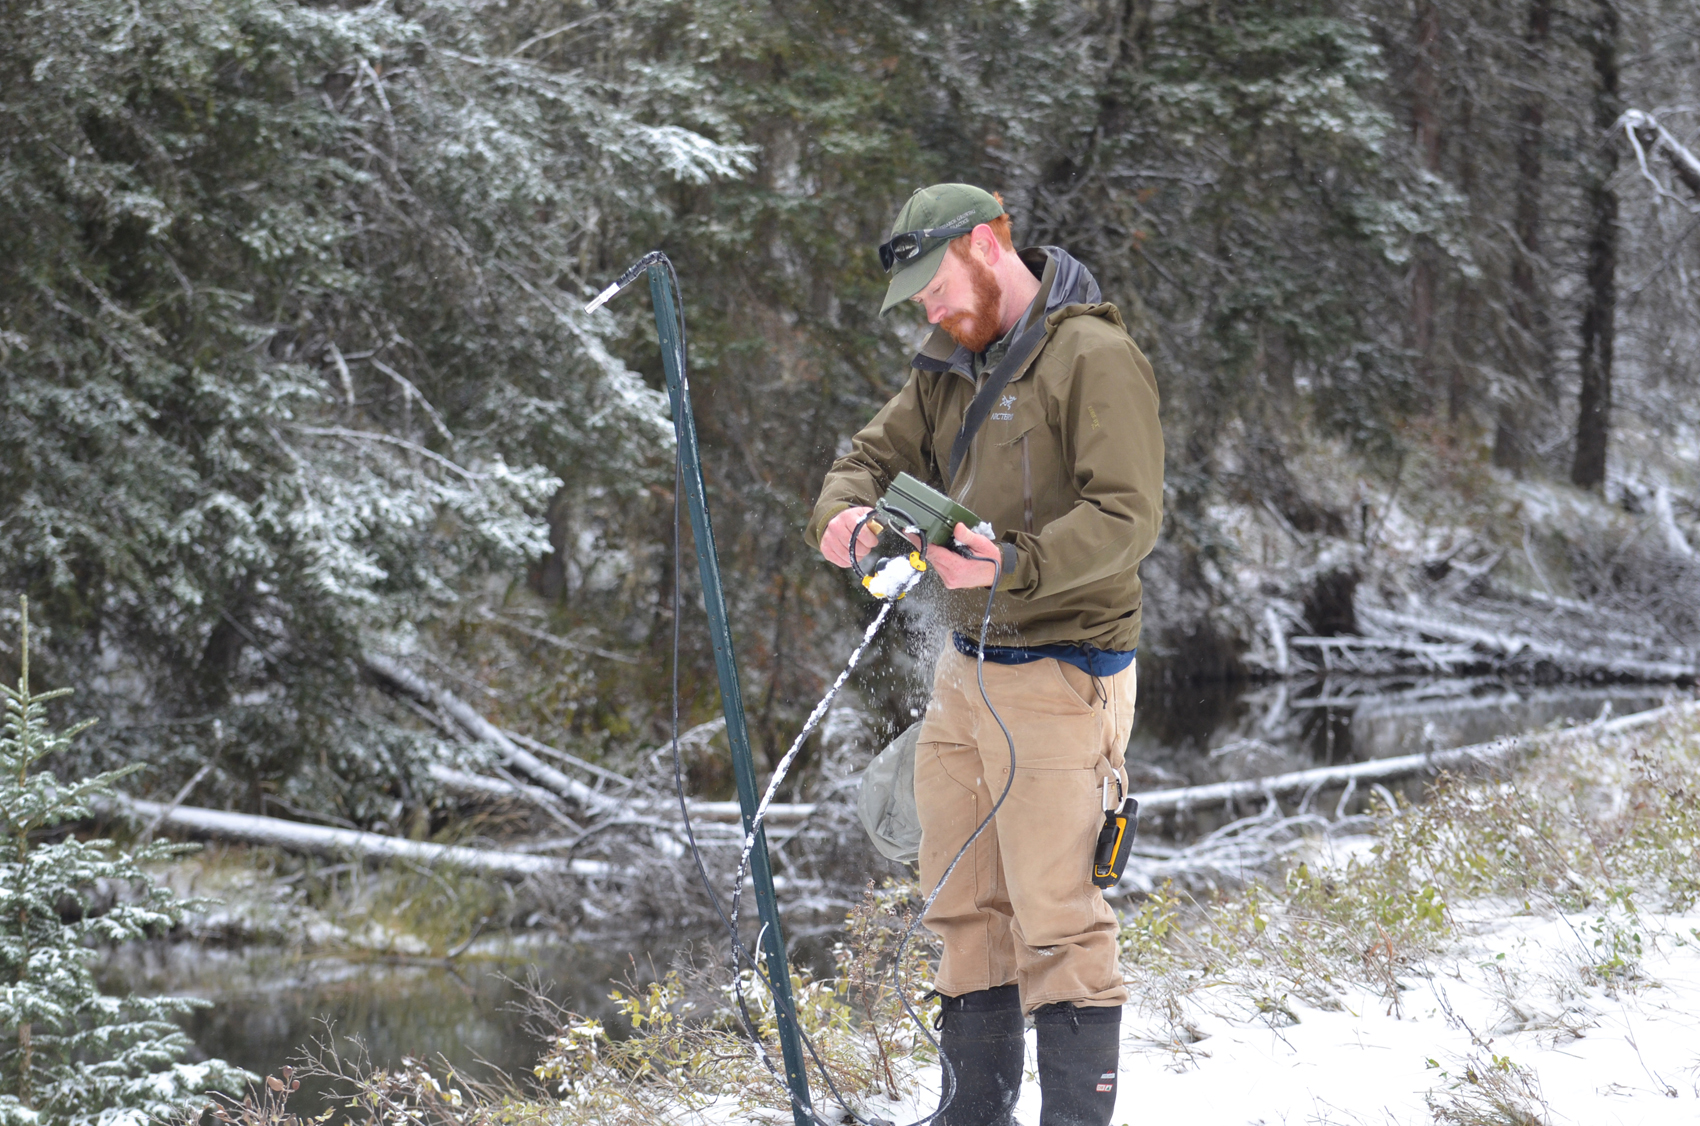 Adam Sprott checking bat detectors in on a snowy day.